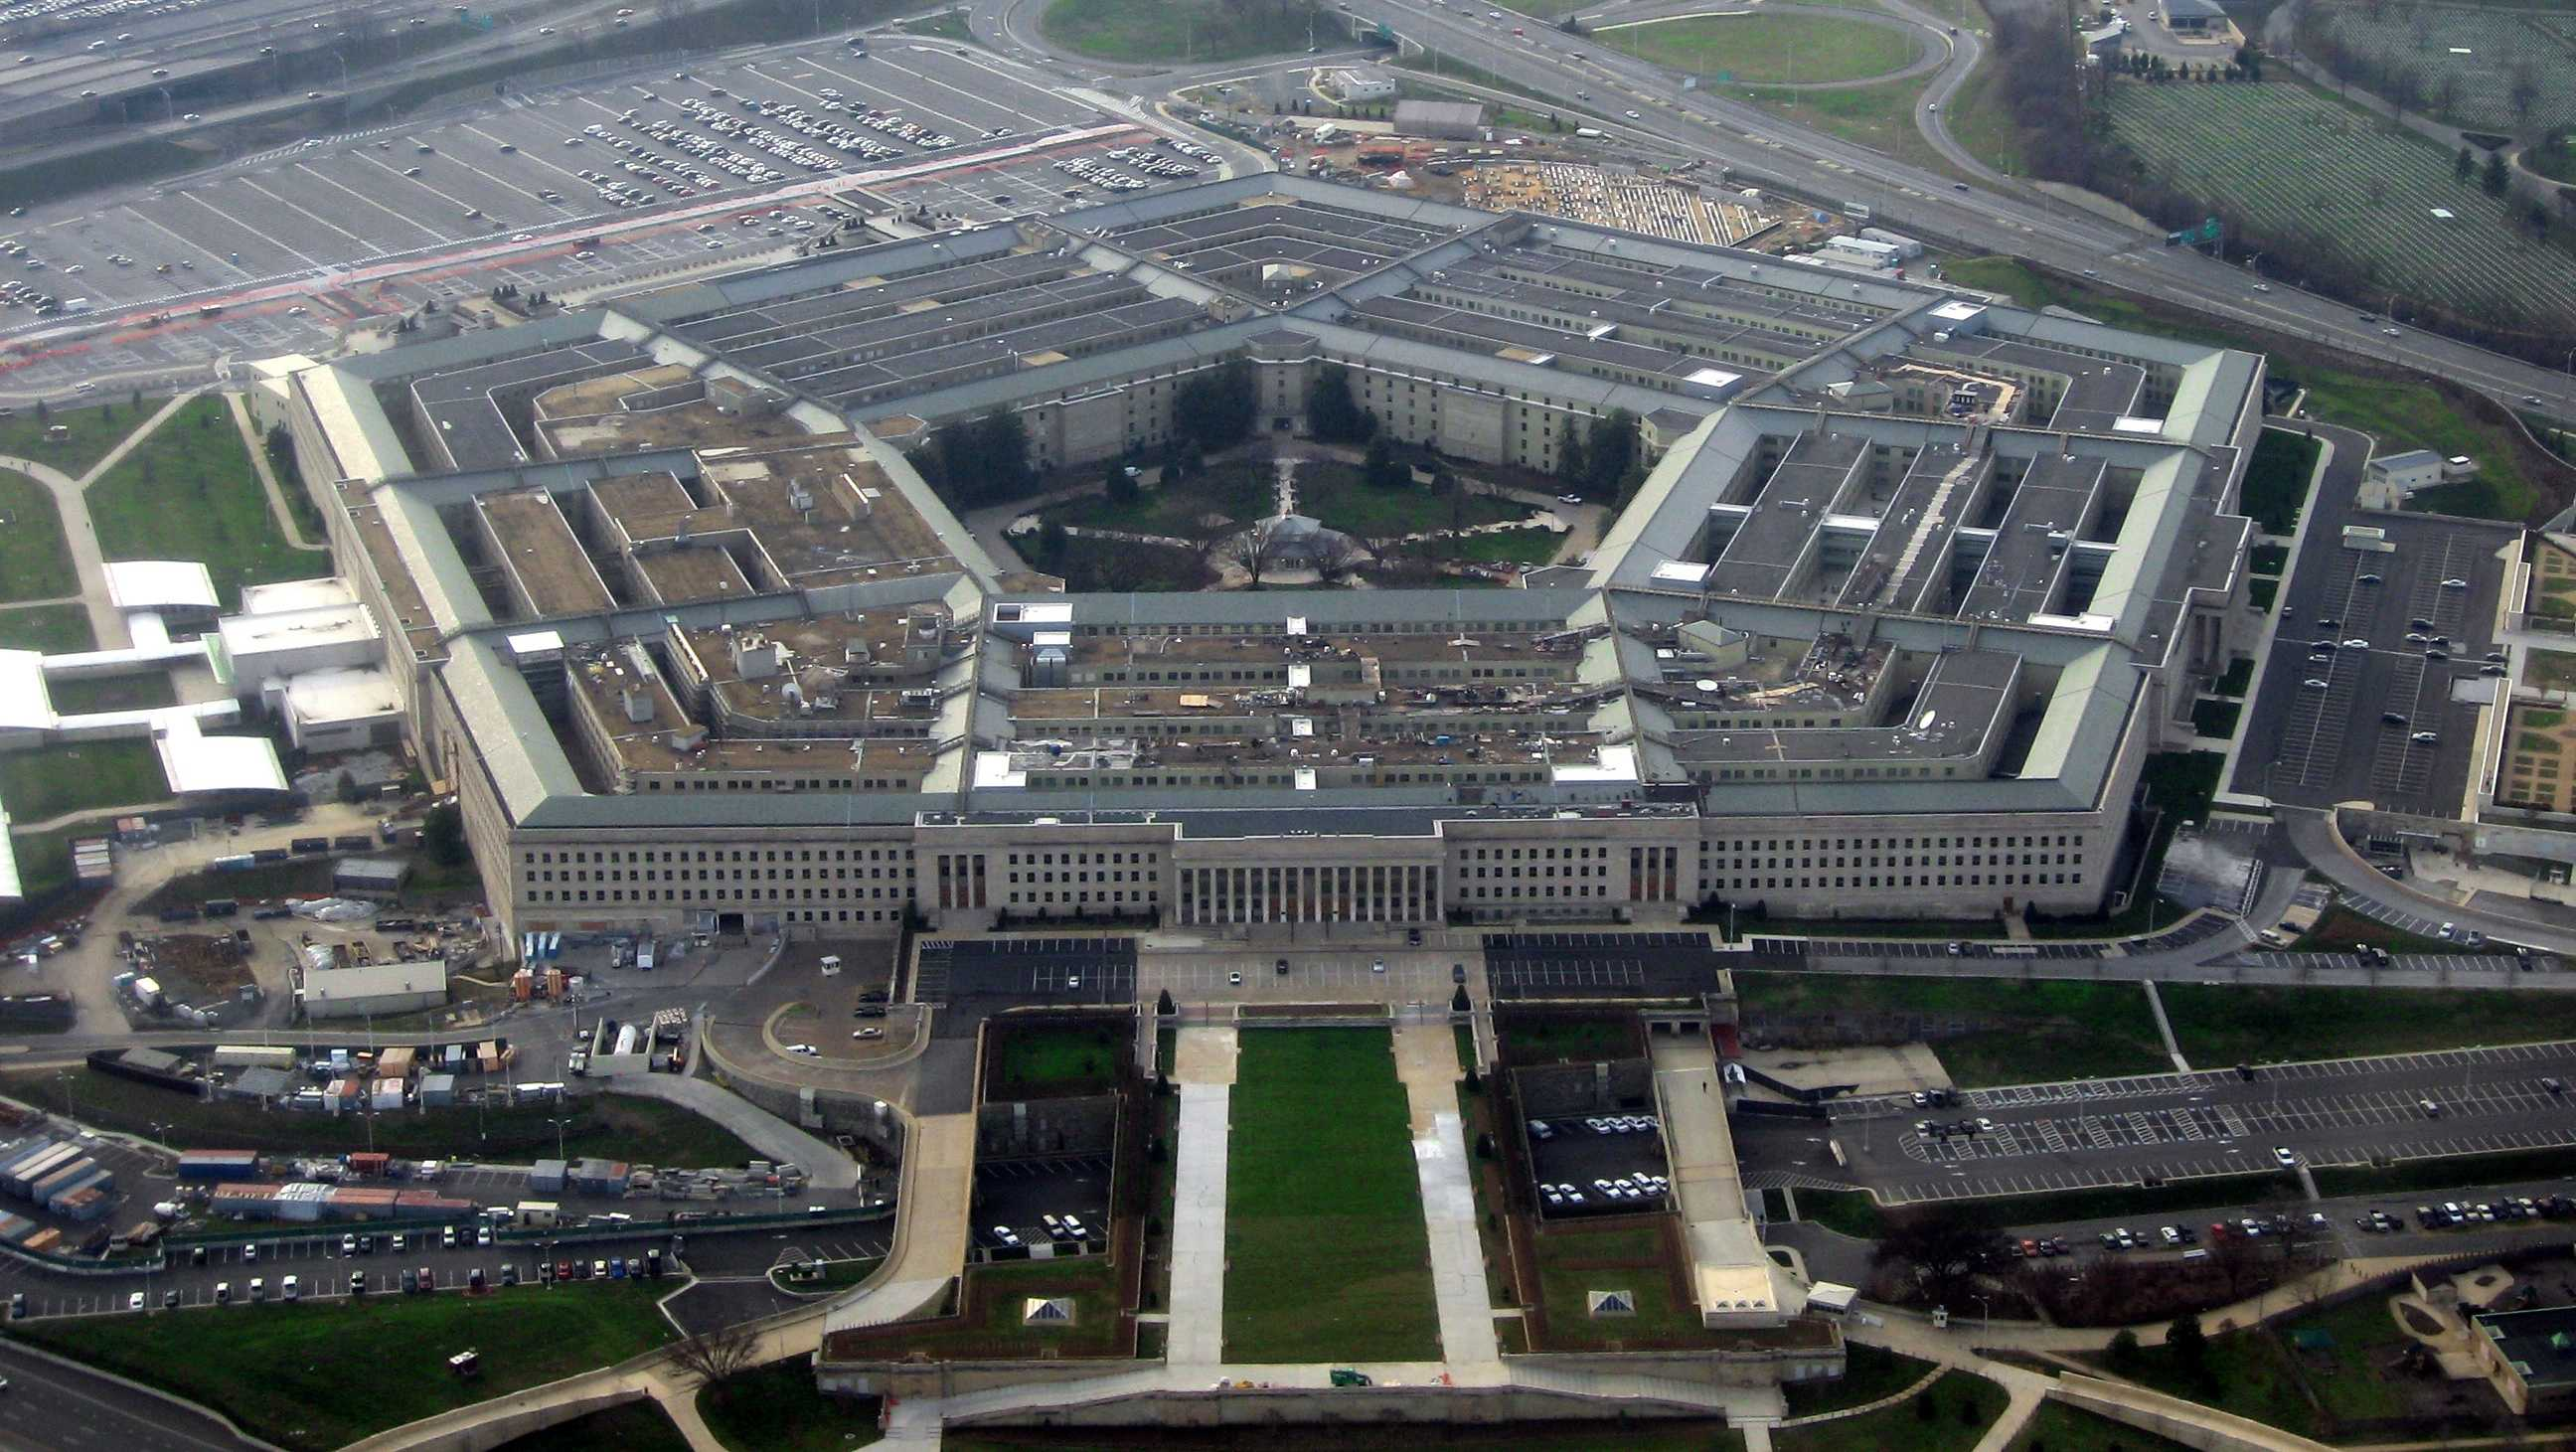 The Pentagon is the headquarters of the U.S.  Department of Defense.